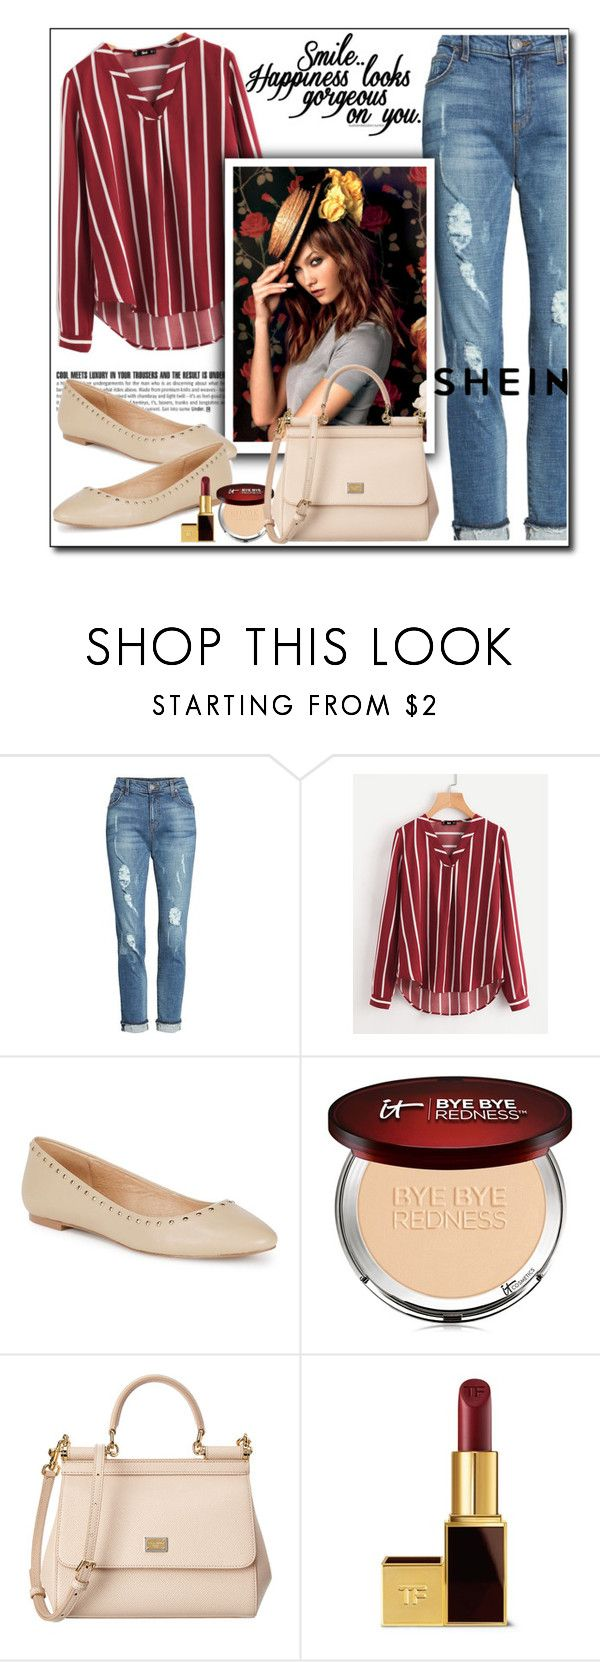 """Shein"" by polybaby ❤ liked on Polyvore featuring KUT from the Kloth, Maiden Lane, It Cosmetics, Dolce&Gabbana and Tom Ford"